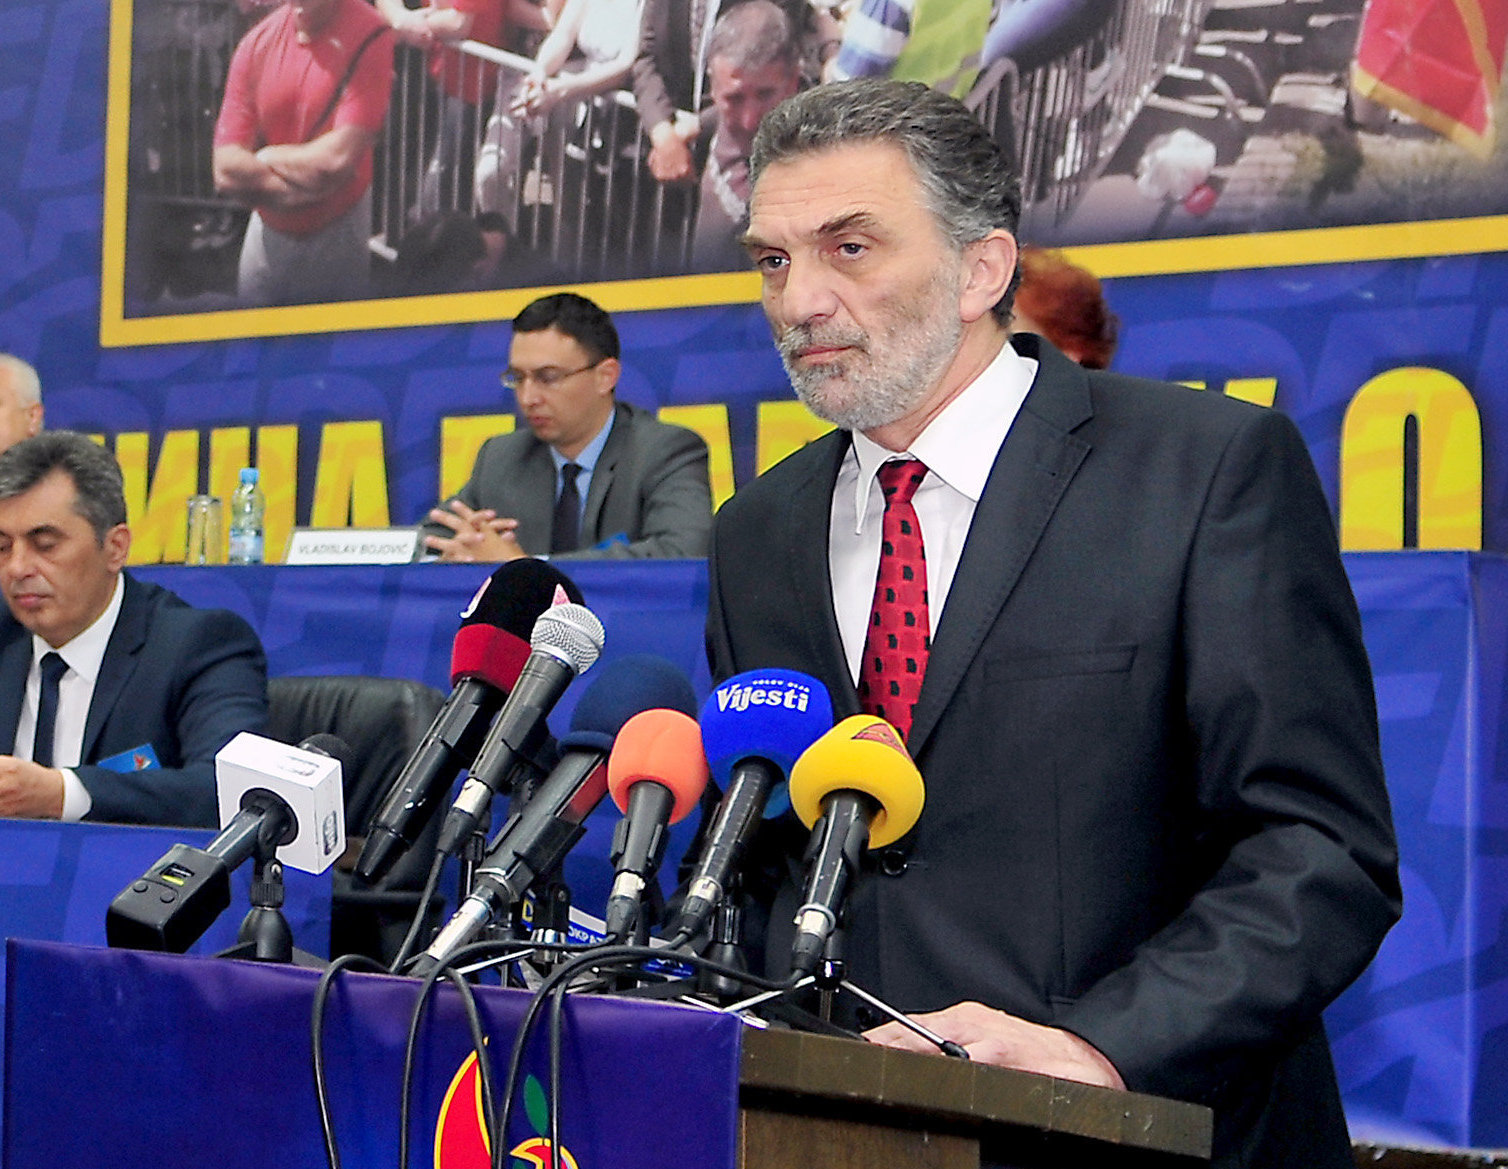 Strahinja Bulajic, Vice President of the political party New Serb Democracy